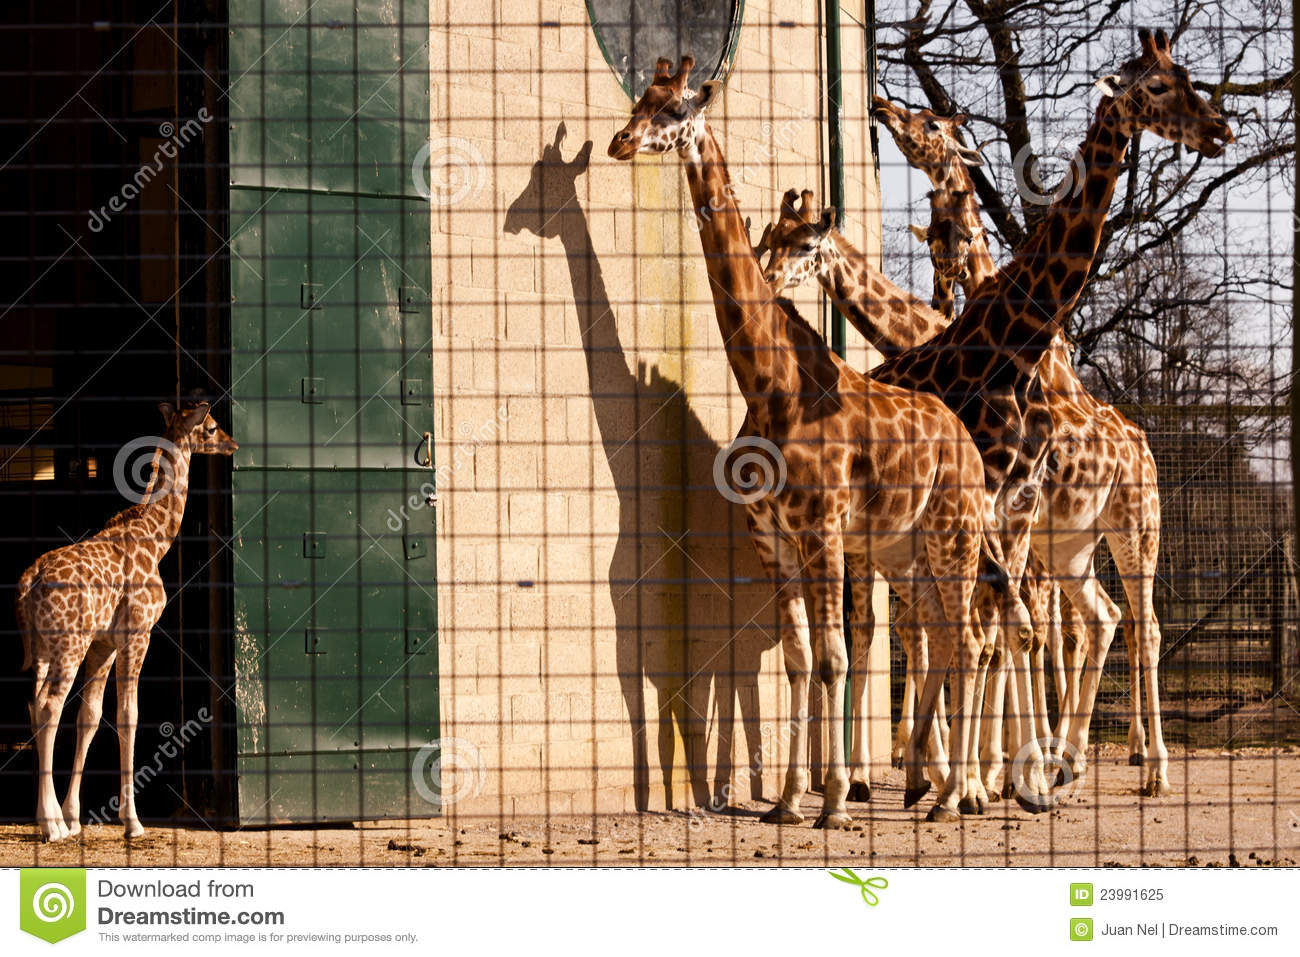 giraffes in captivity 10 february 2014 questions and answers about giraffes in captivity an expert explains why he believes the copenhagen zoo was correct in its decision to kill 2-year-old marius.